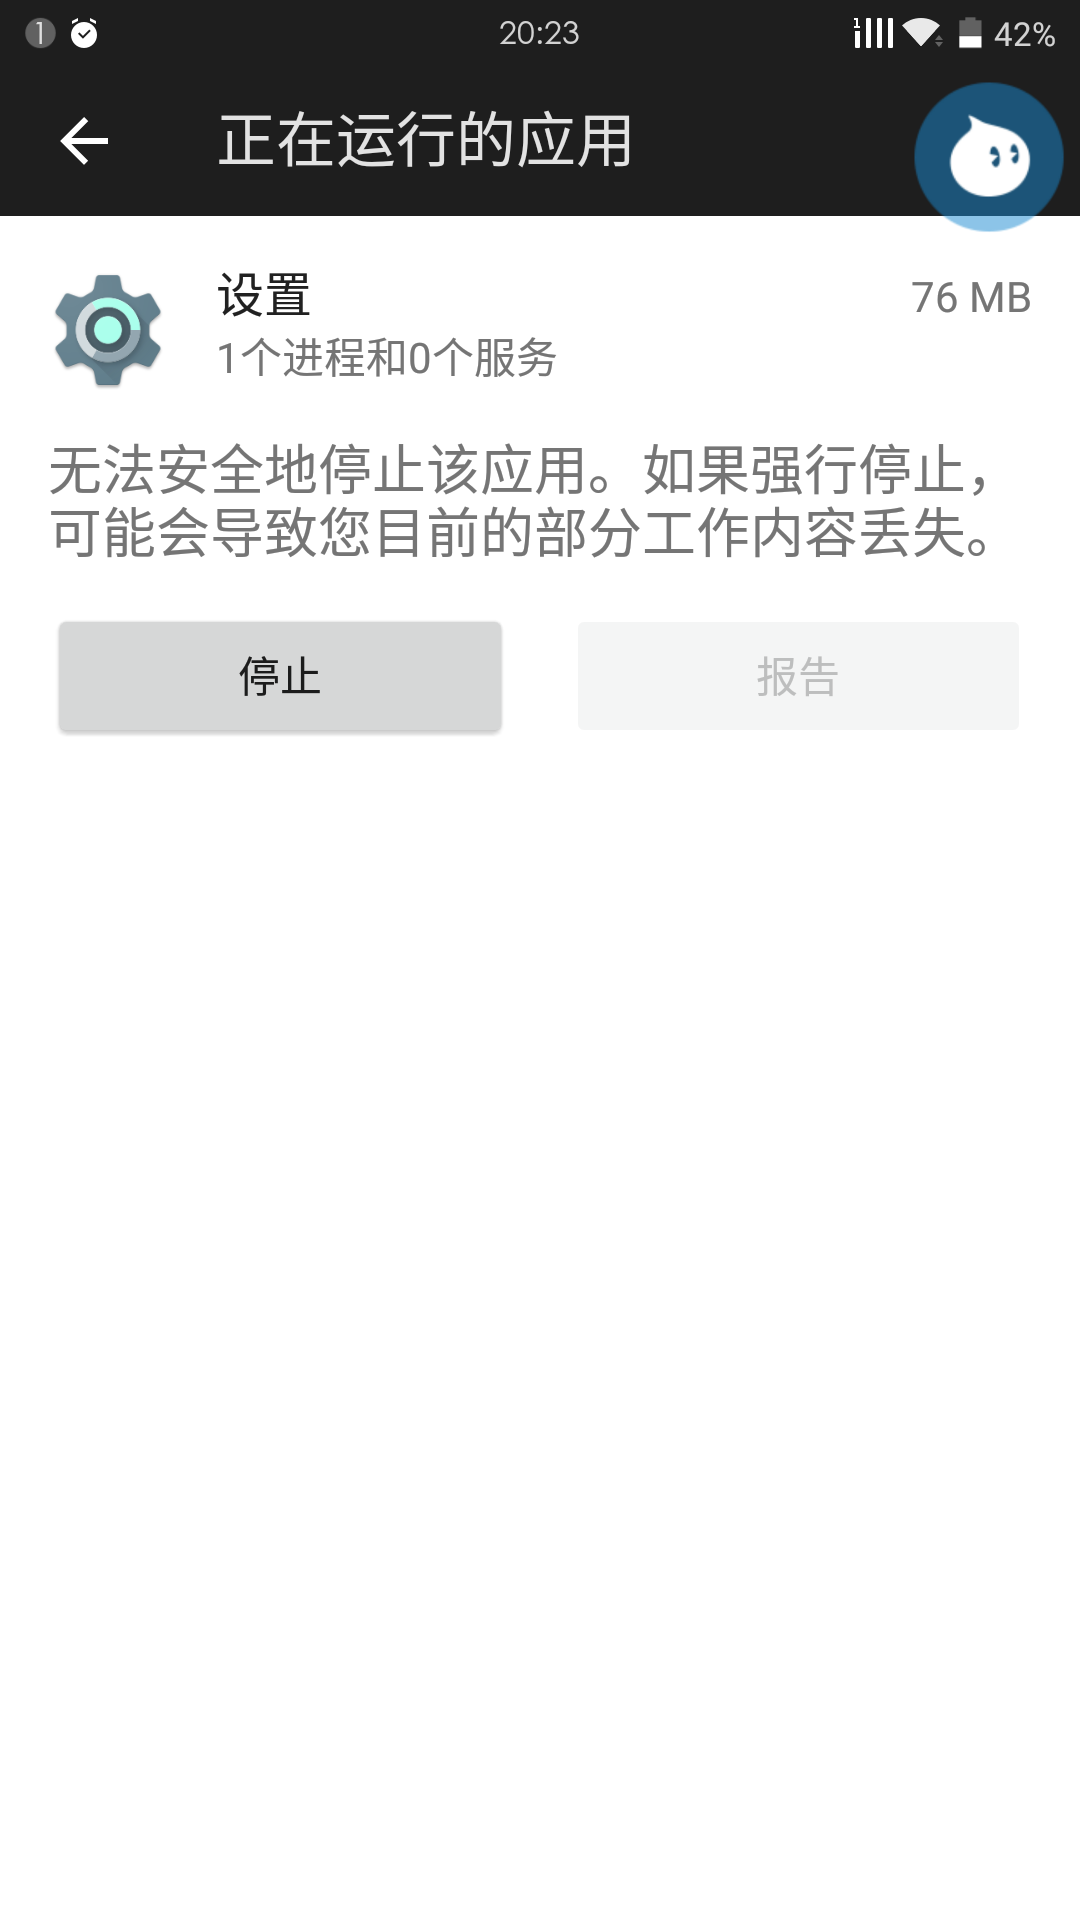 Screenshot_2015-08-14-20-23-39.png